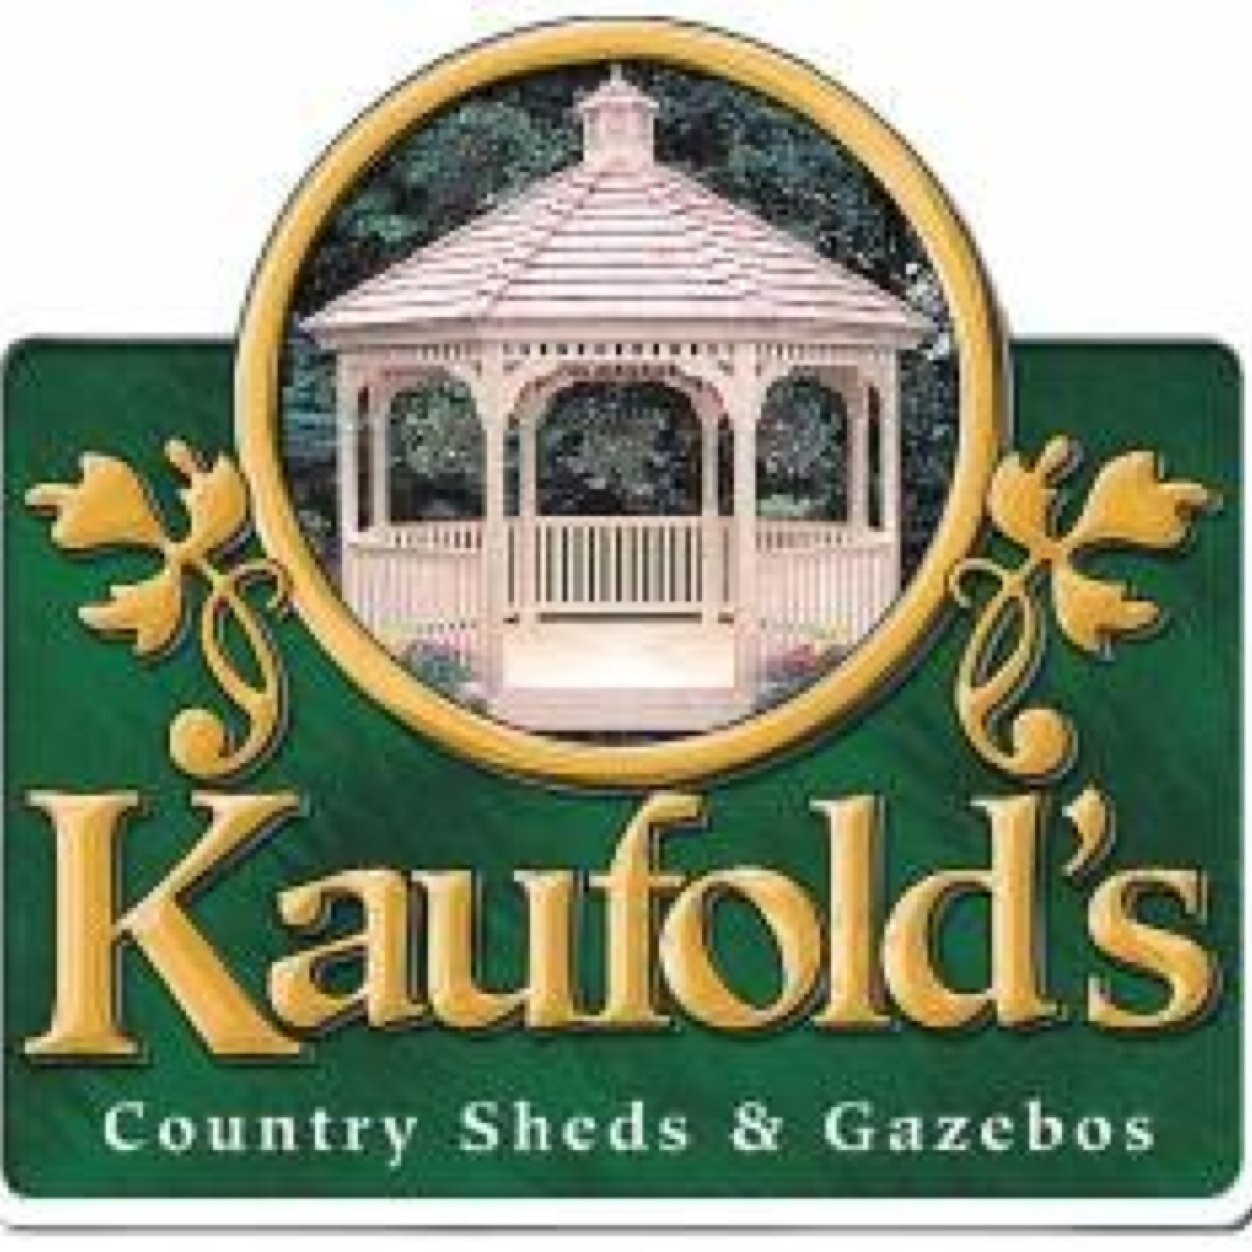 Kaufolds On Twitter Kaufolds Country Sheds And Gazebos Offers